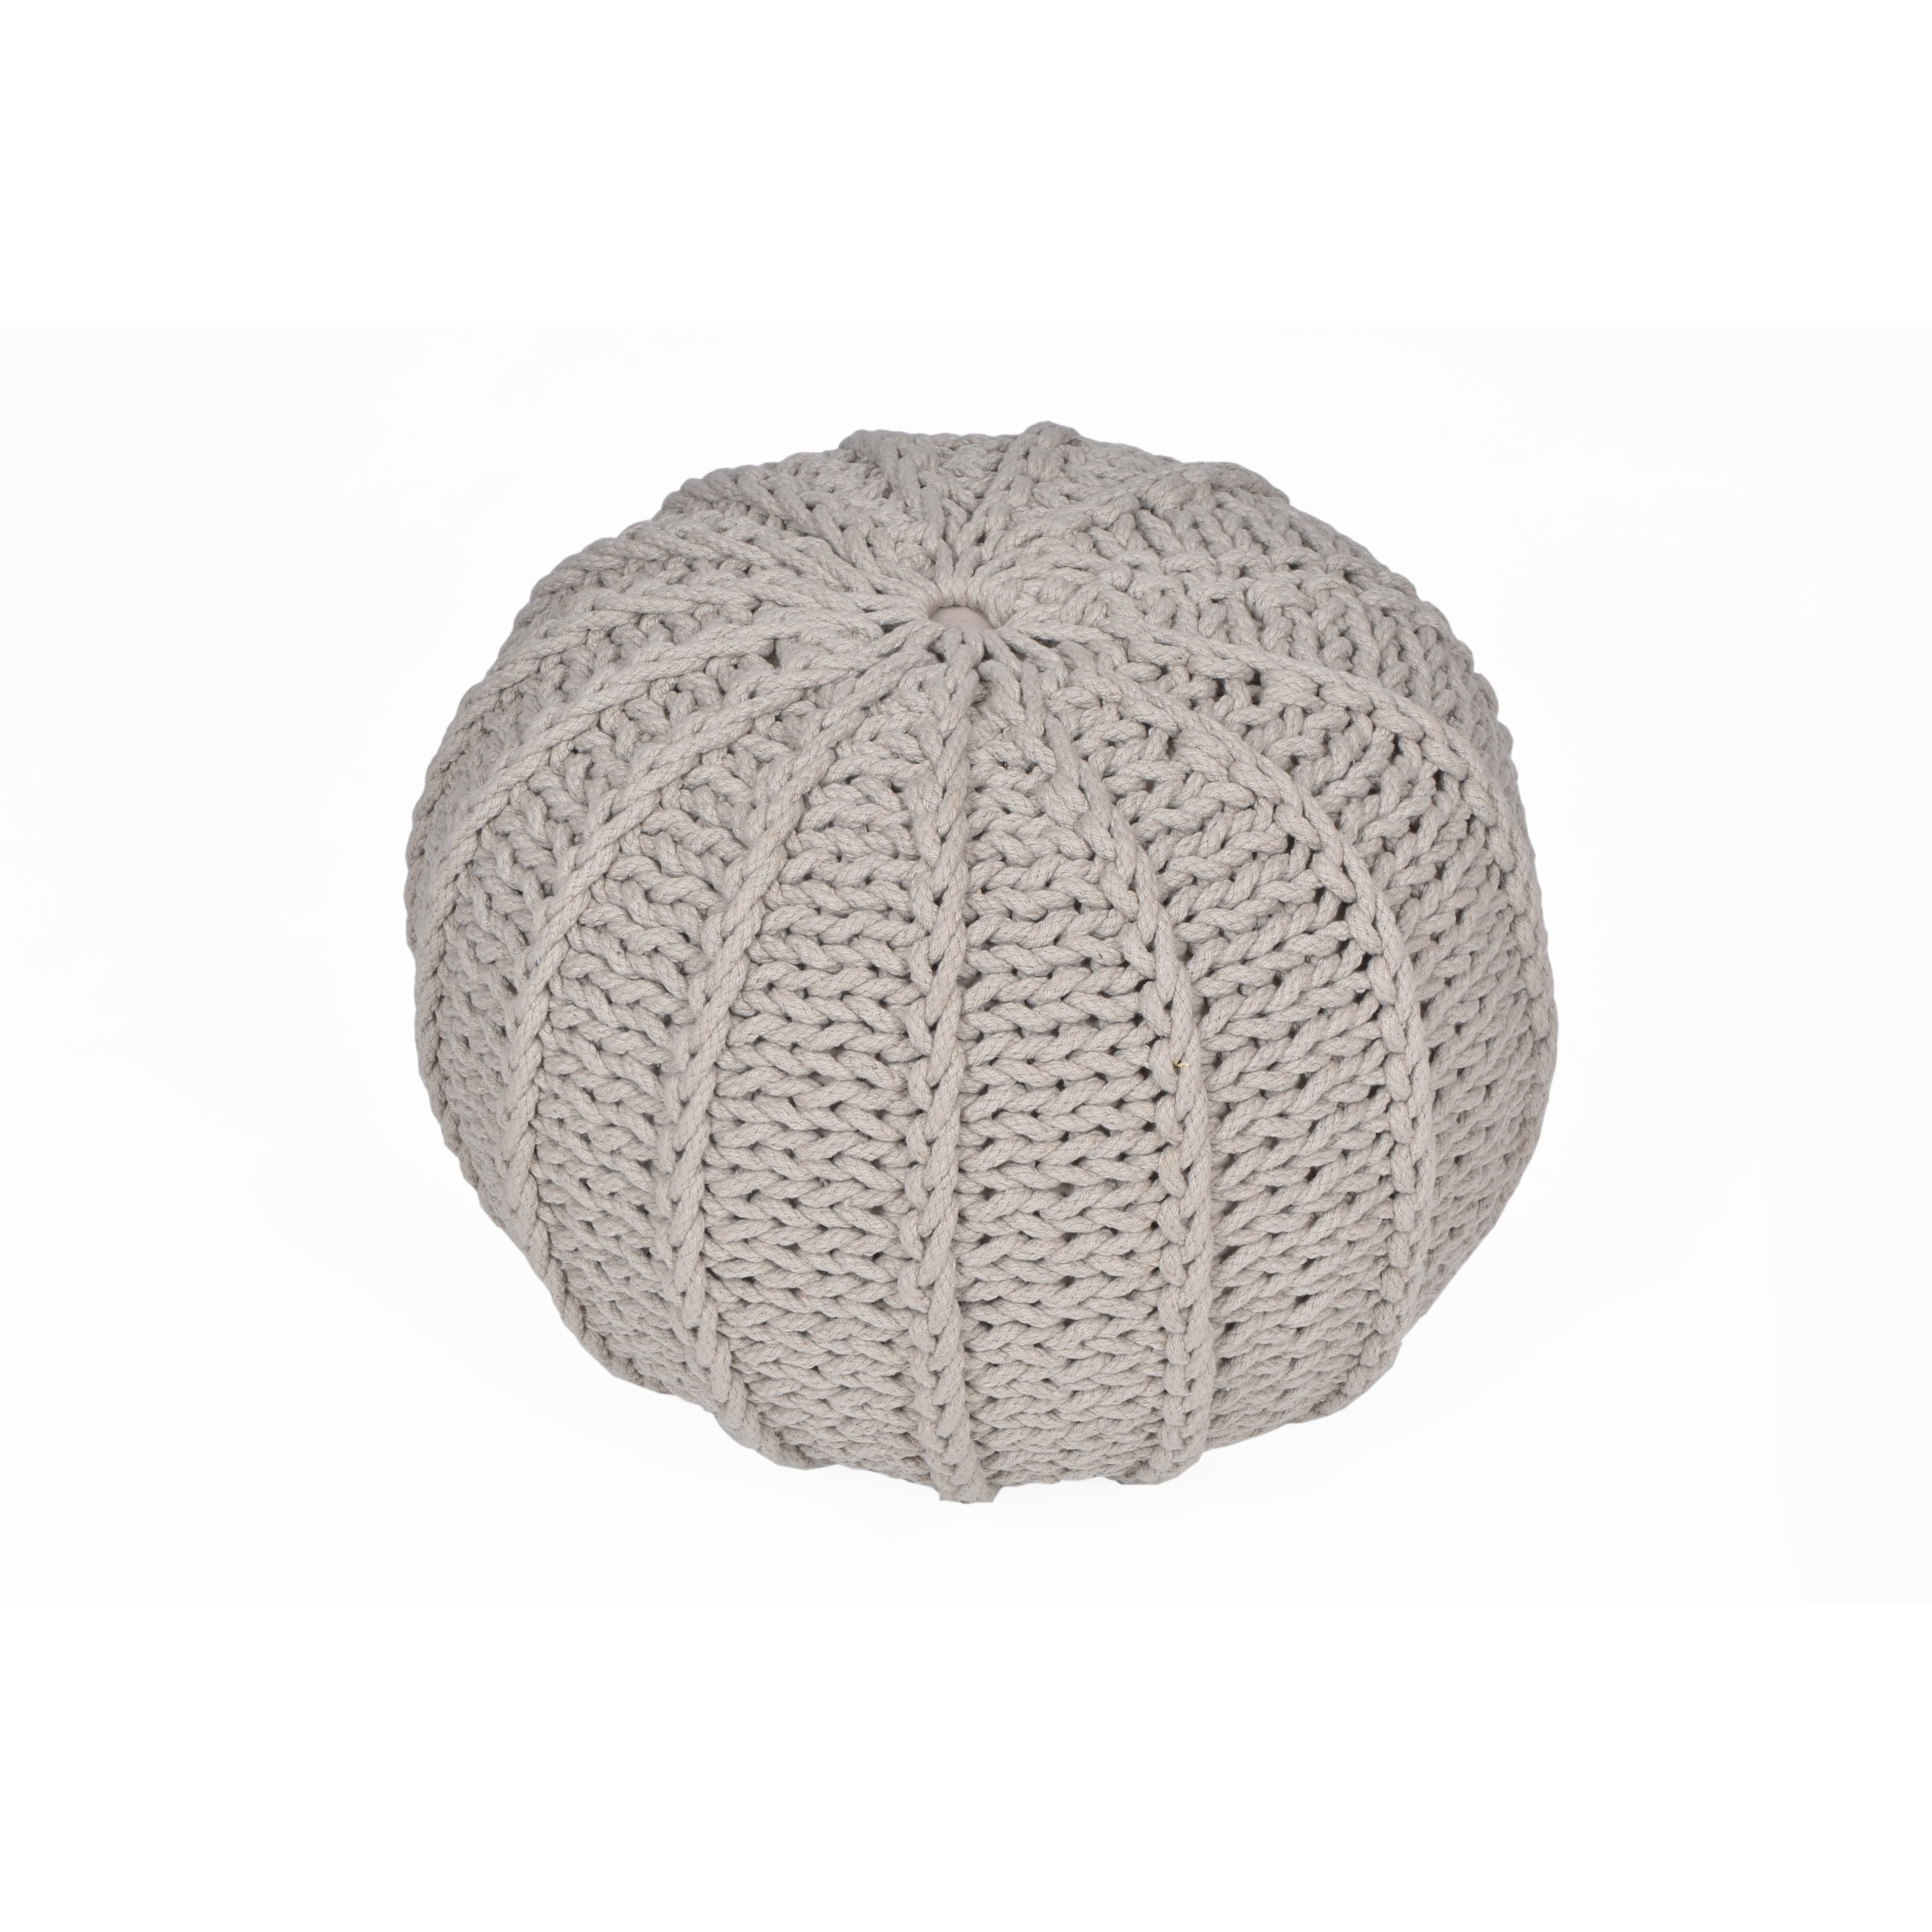 Knitting Pattern For Round Pouf : VCNY Cable Knitted Round Pouf & Reviews Wayfair